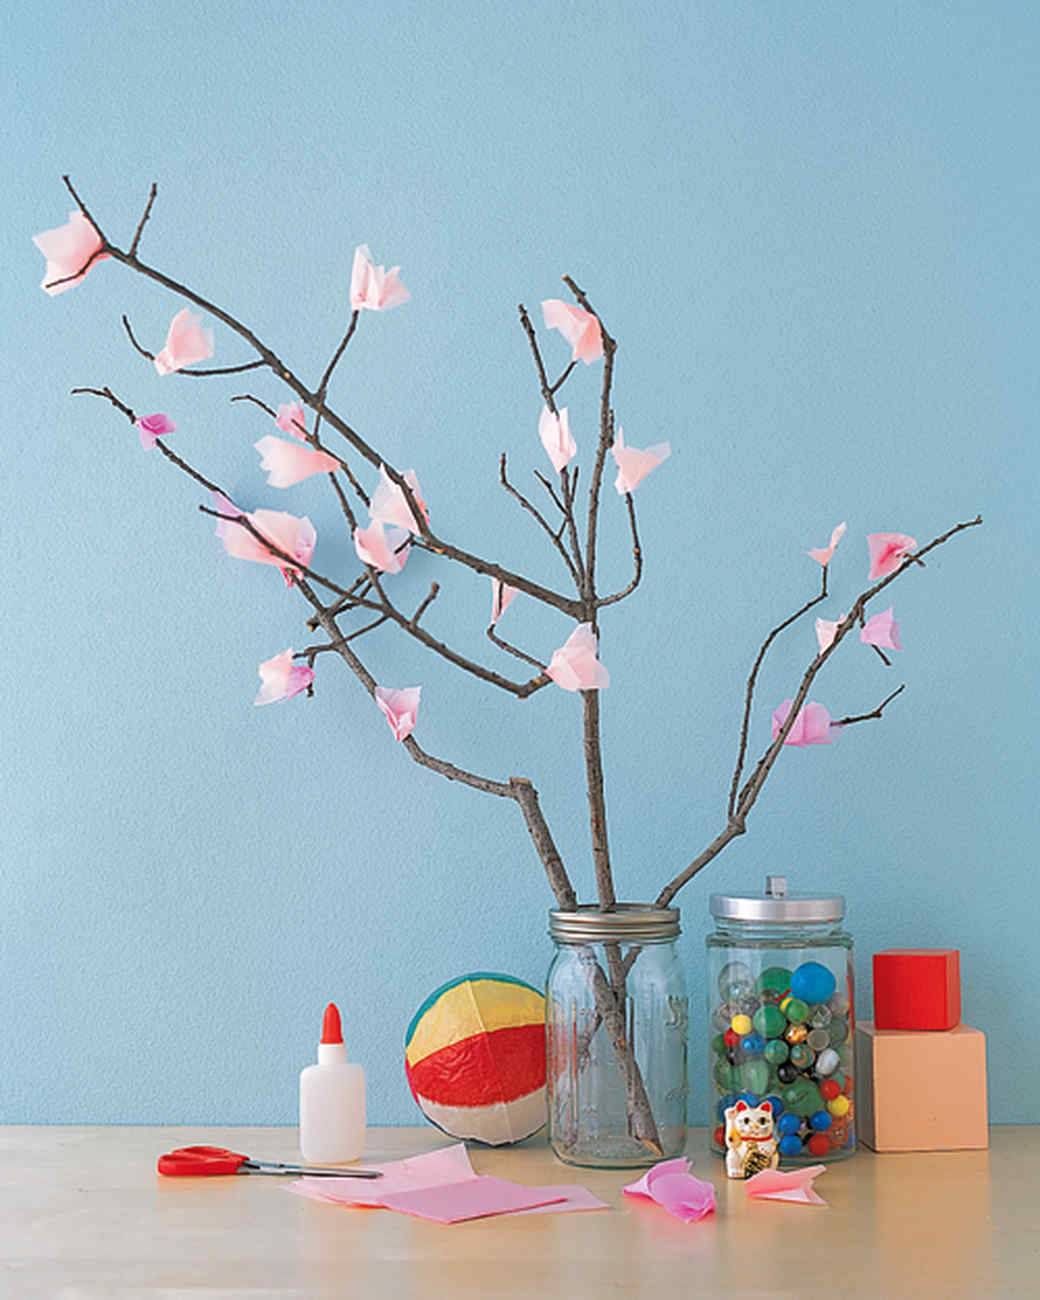 10 show and tell crafts for kids martha stewart